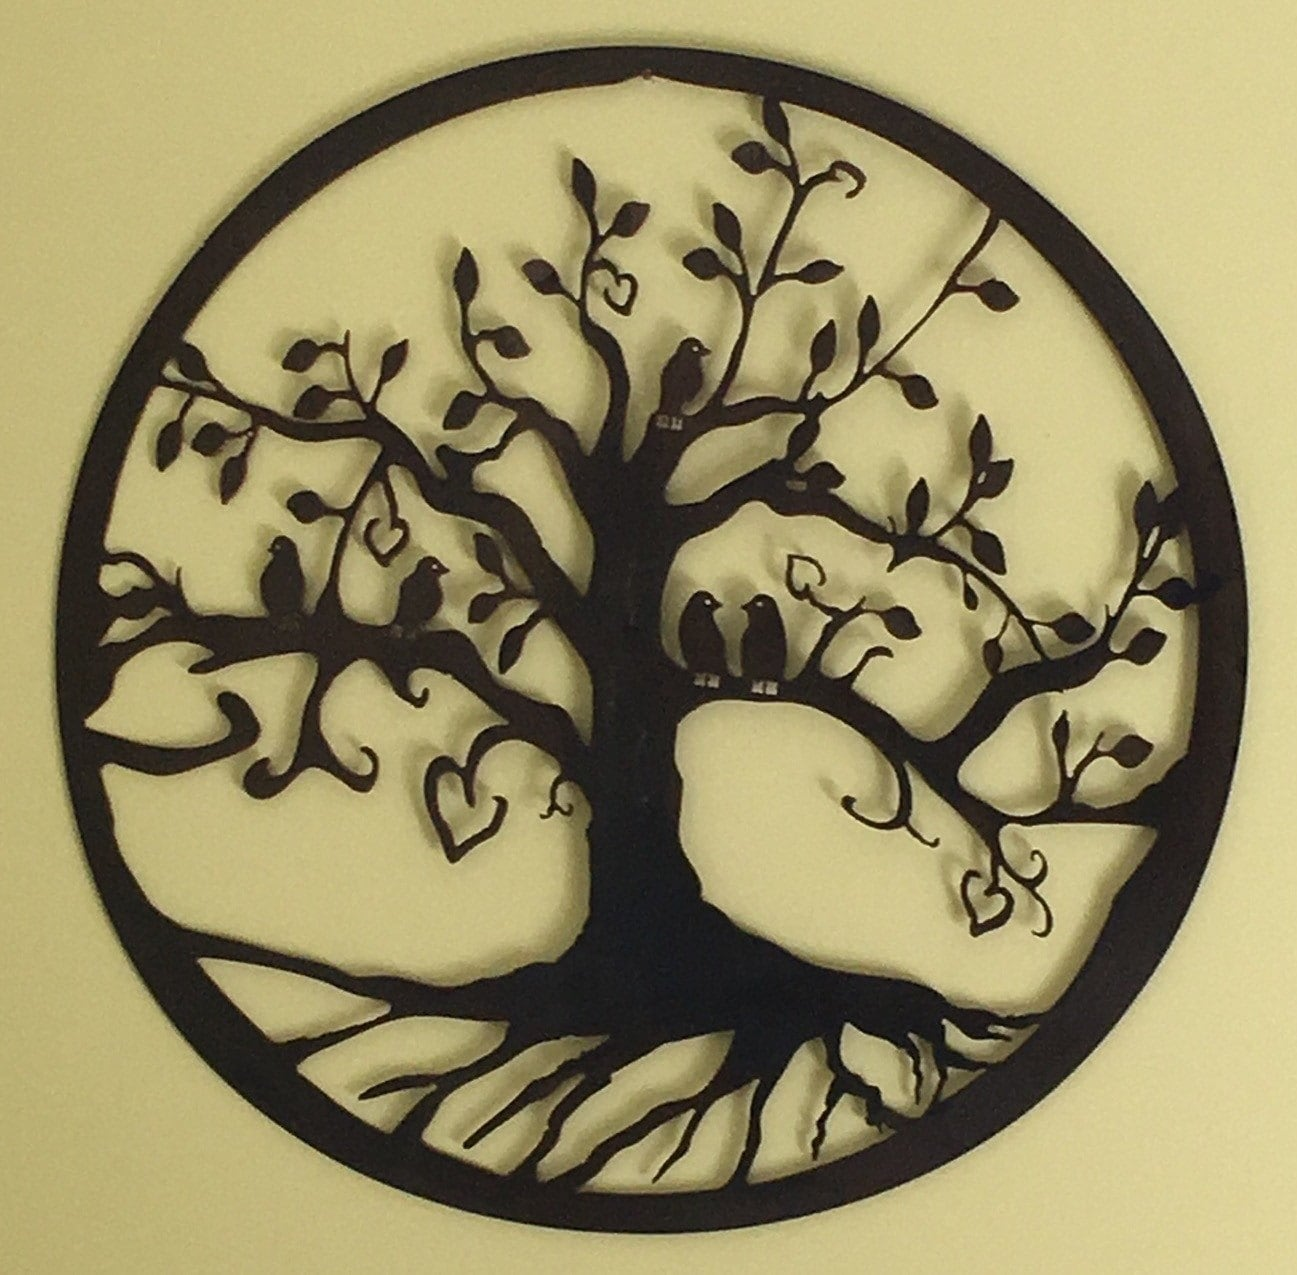 Birds in a love tree metal wall art [E1023101840990021M] - $43.99 ...